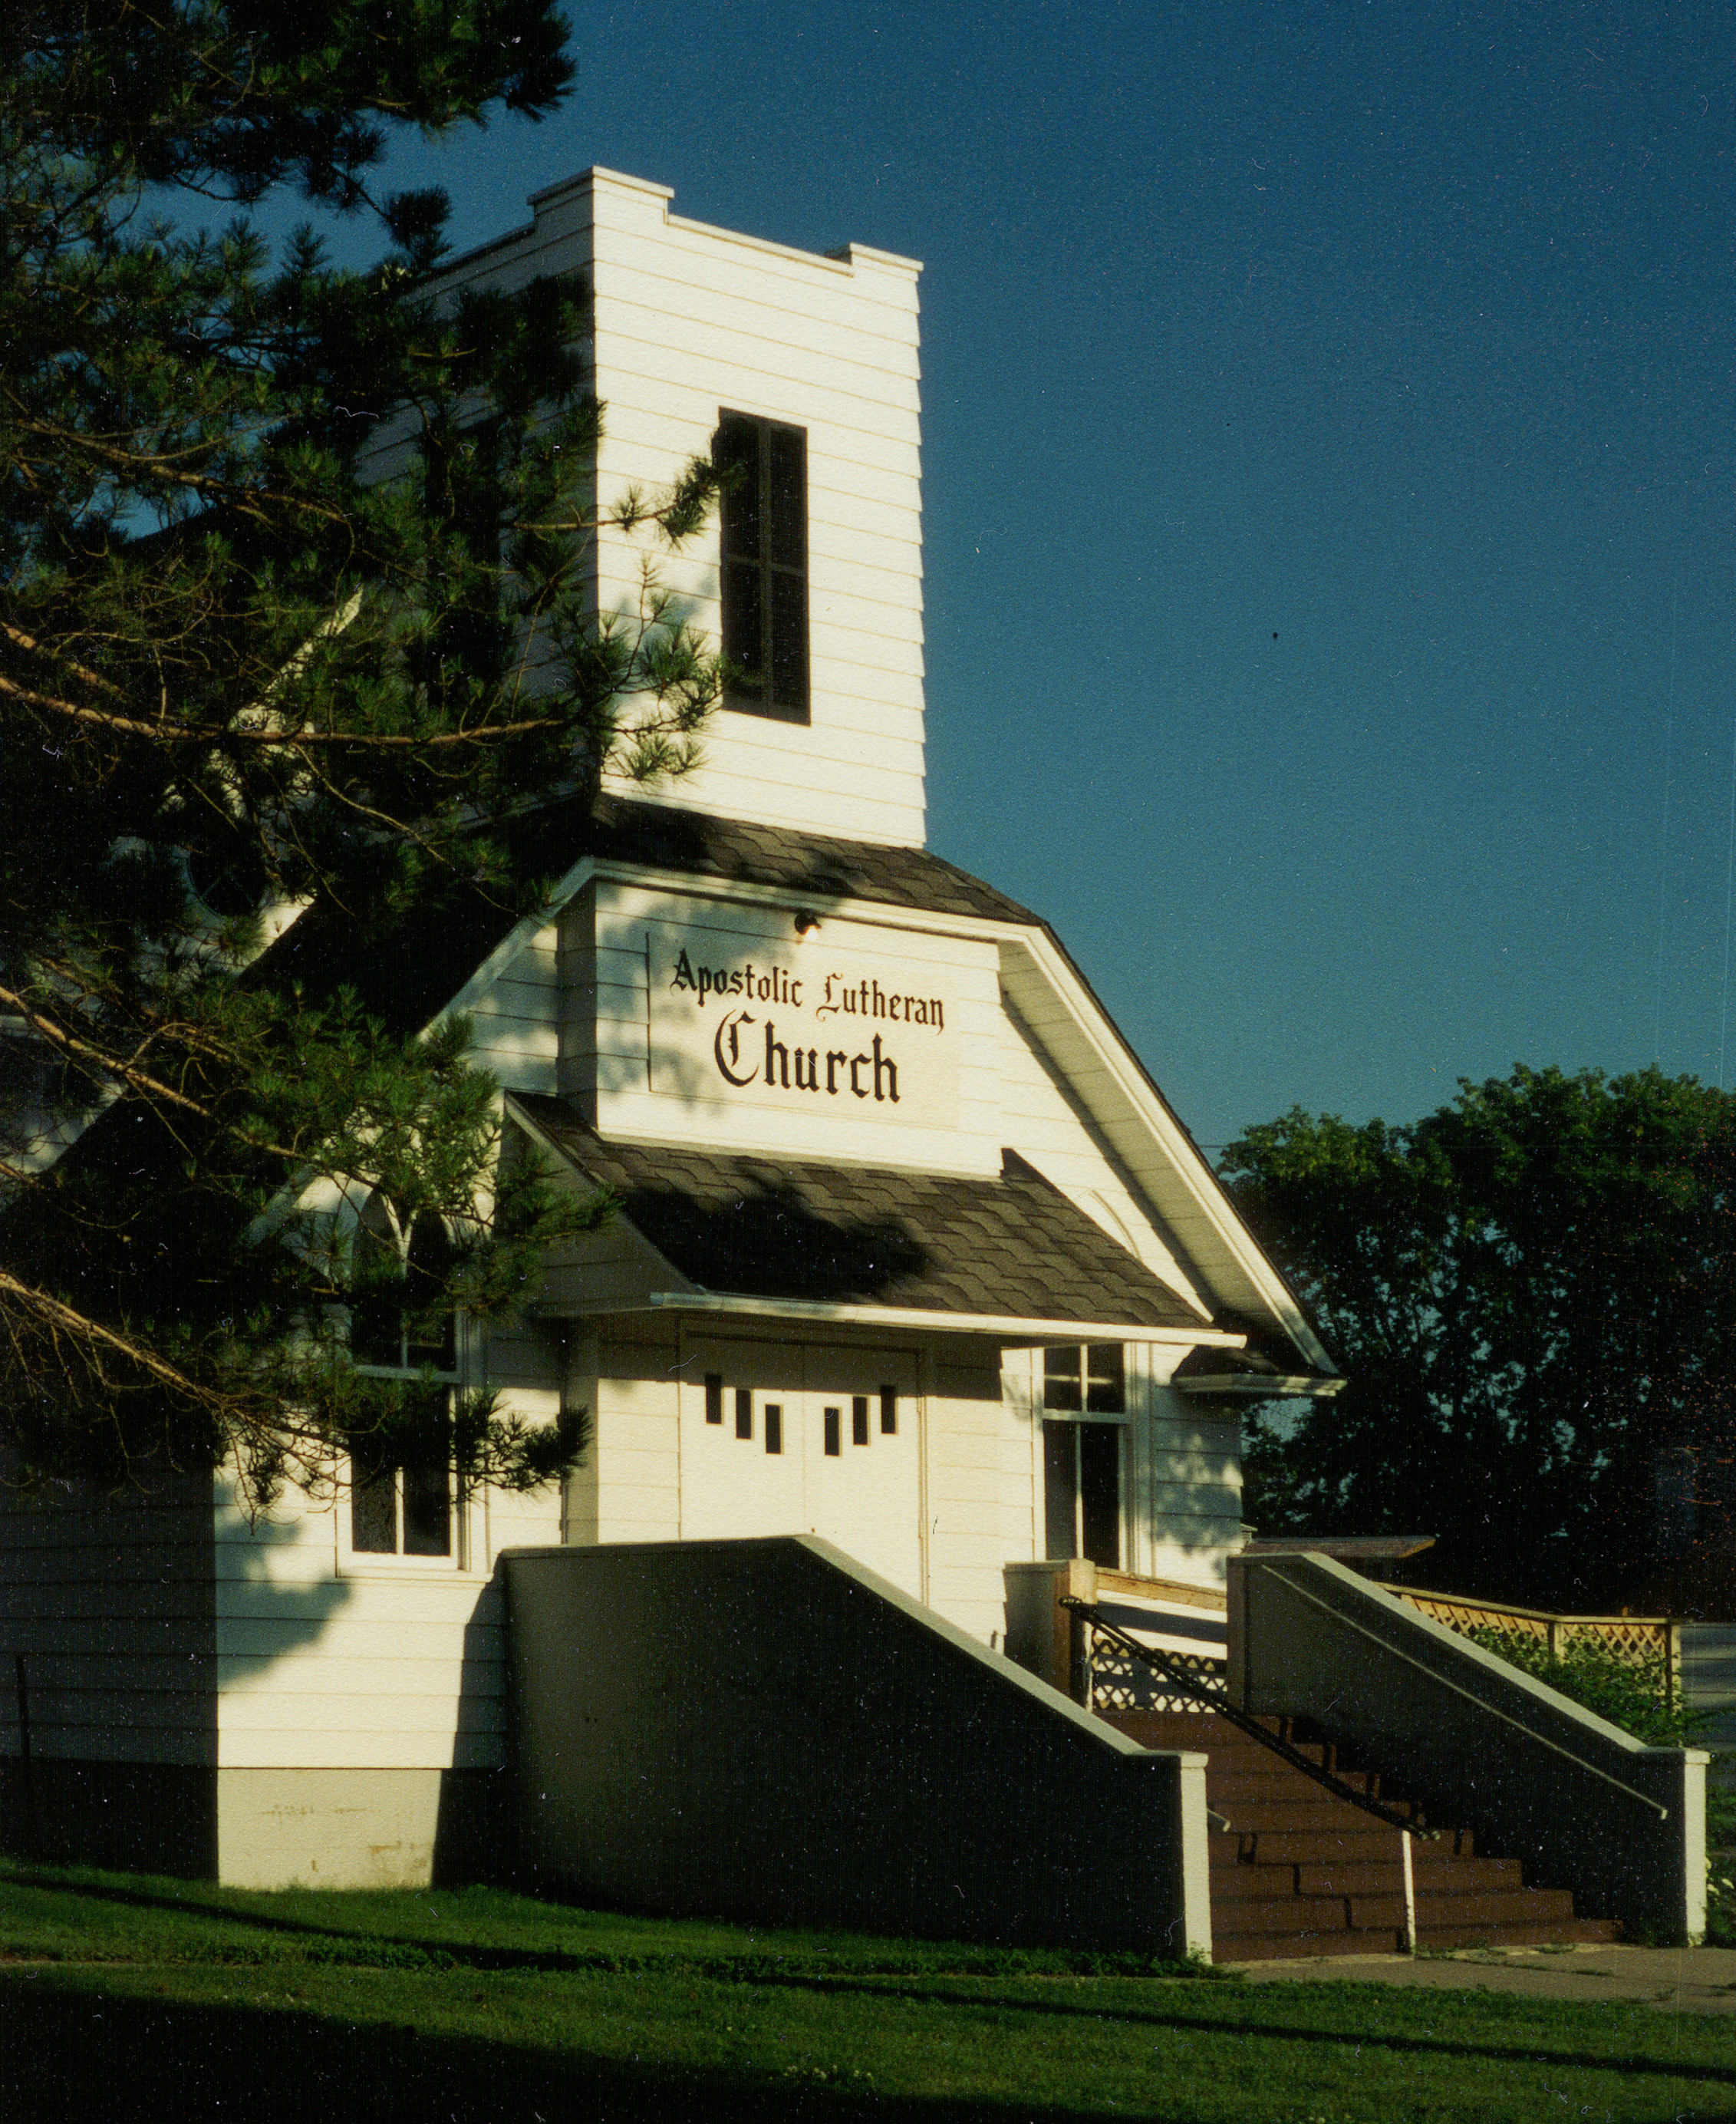 Apostolic Lutheran Church › Church List